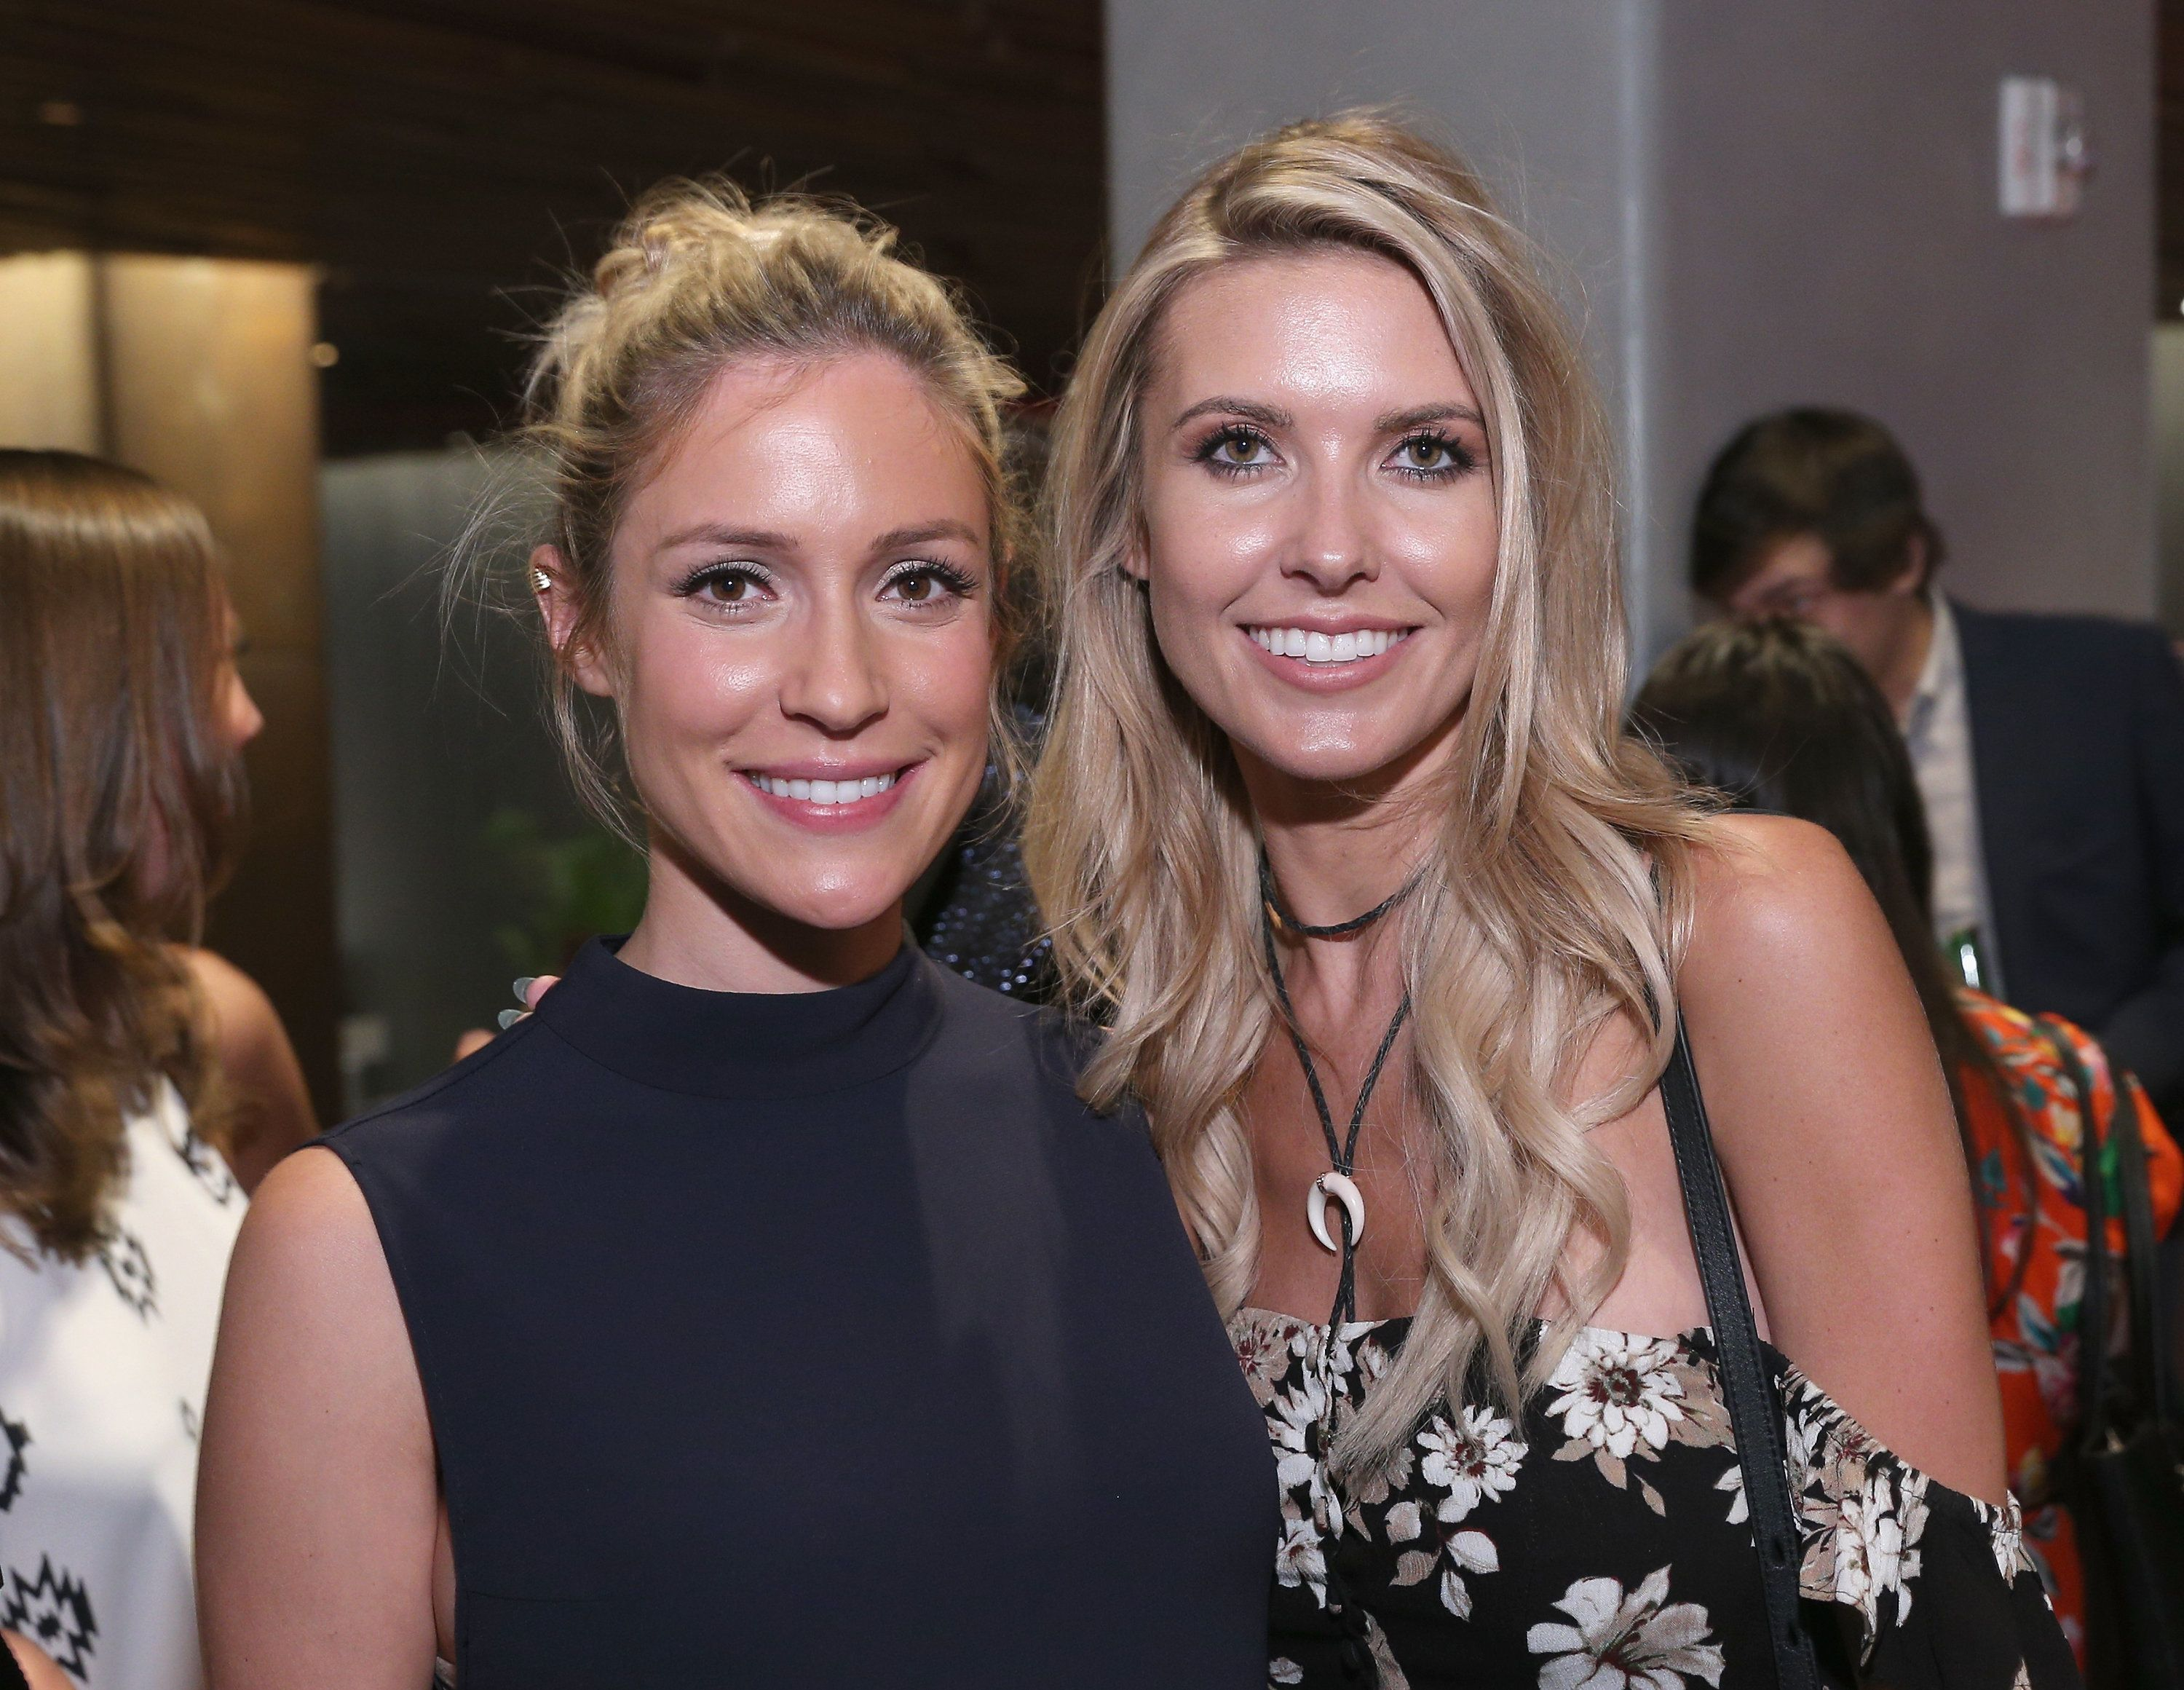 NEW YORK, NY - SEPTEMBER 17:  Kristin Cavallari and Audrina Patridge attend as KIA STYLE360 Hosts Kristin Cavallari By Chinese Laundry At Row NYC on September 17, 2015 in New York City.  (Photo by Thomas Concordia/WireImage for STYLE360)